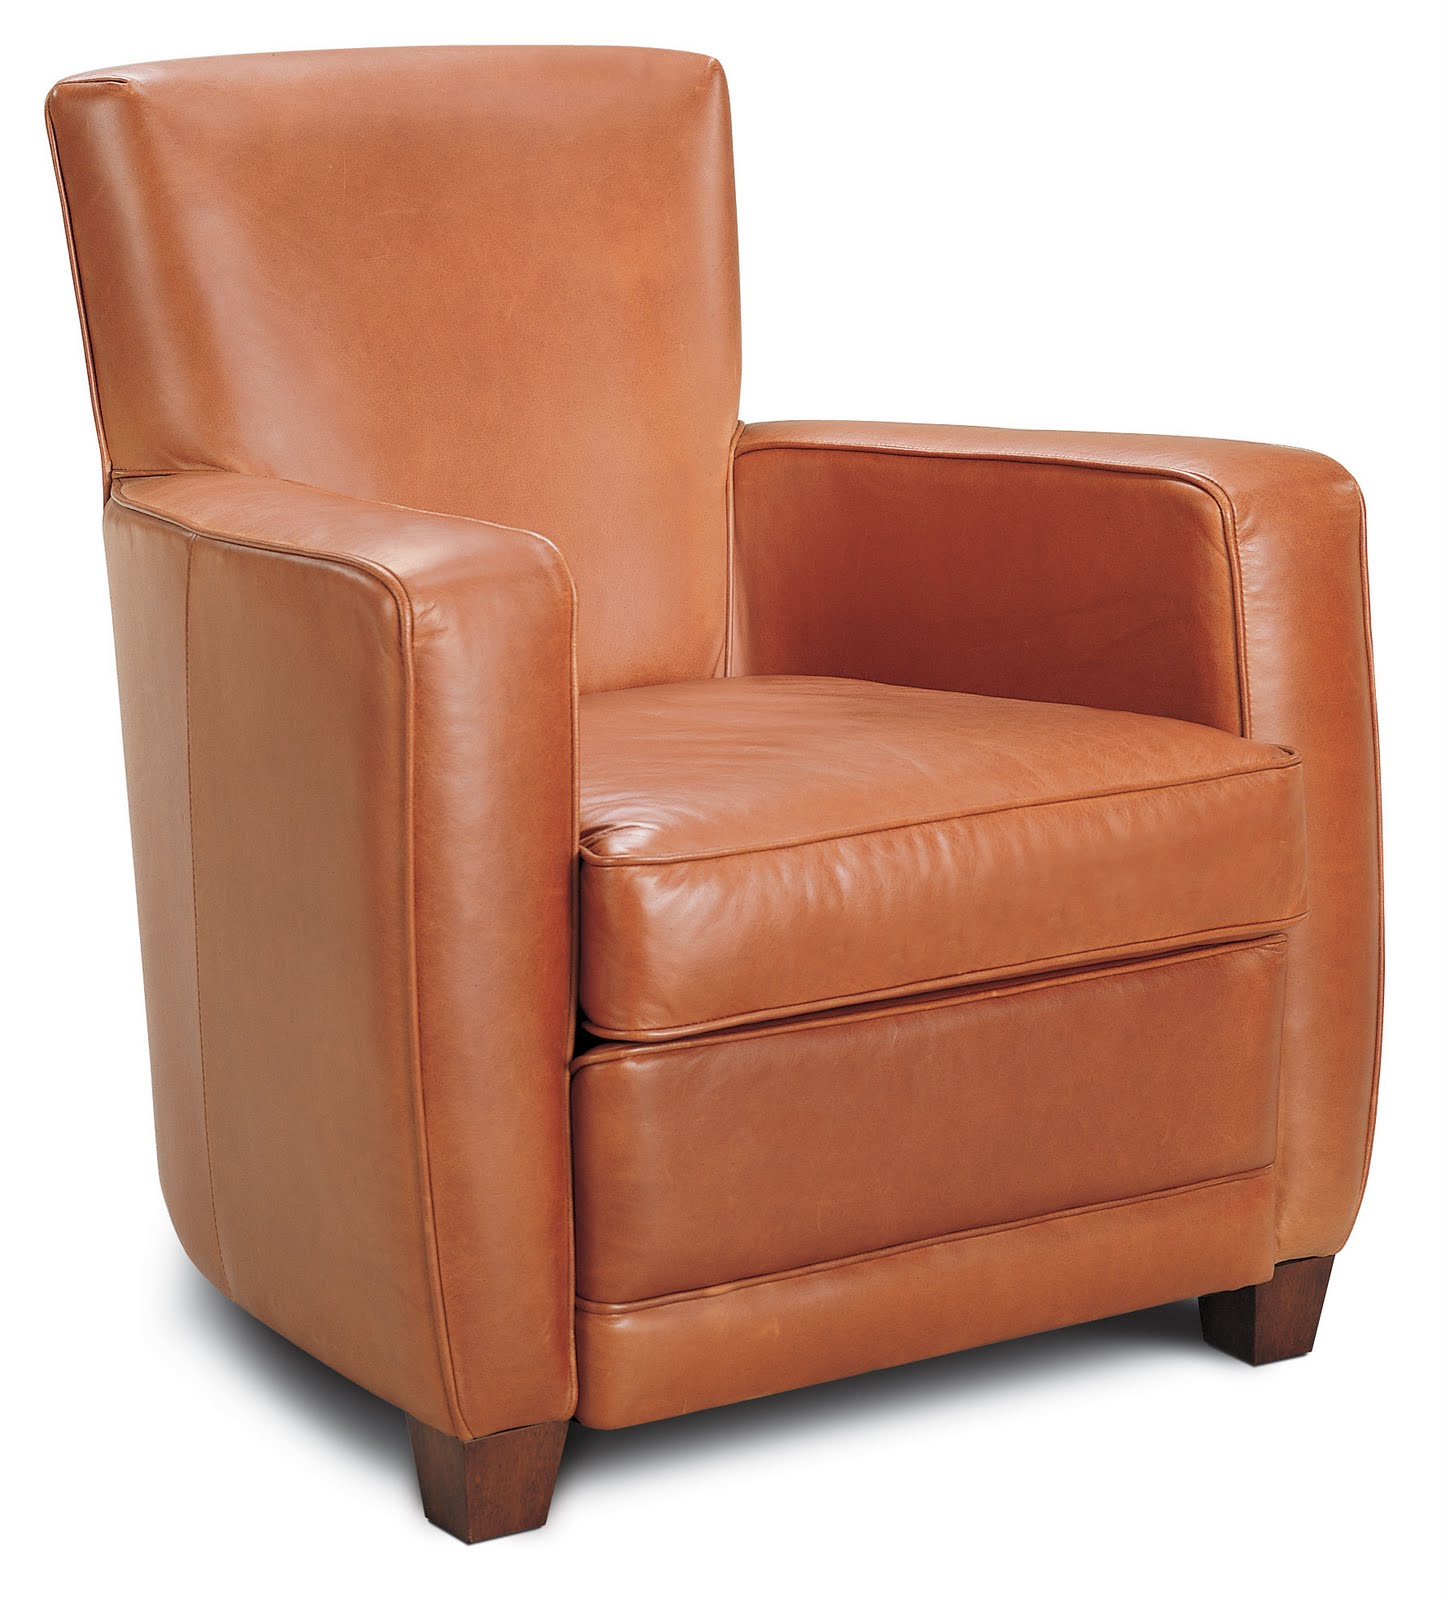 can you clean white leather sofas sofa com bed reviews what use to a couch home improvement